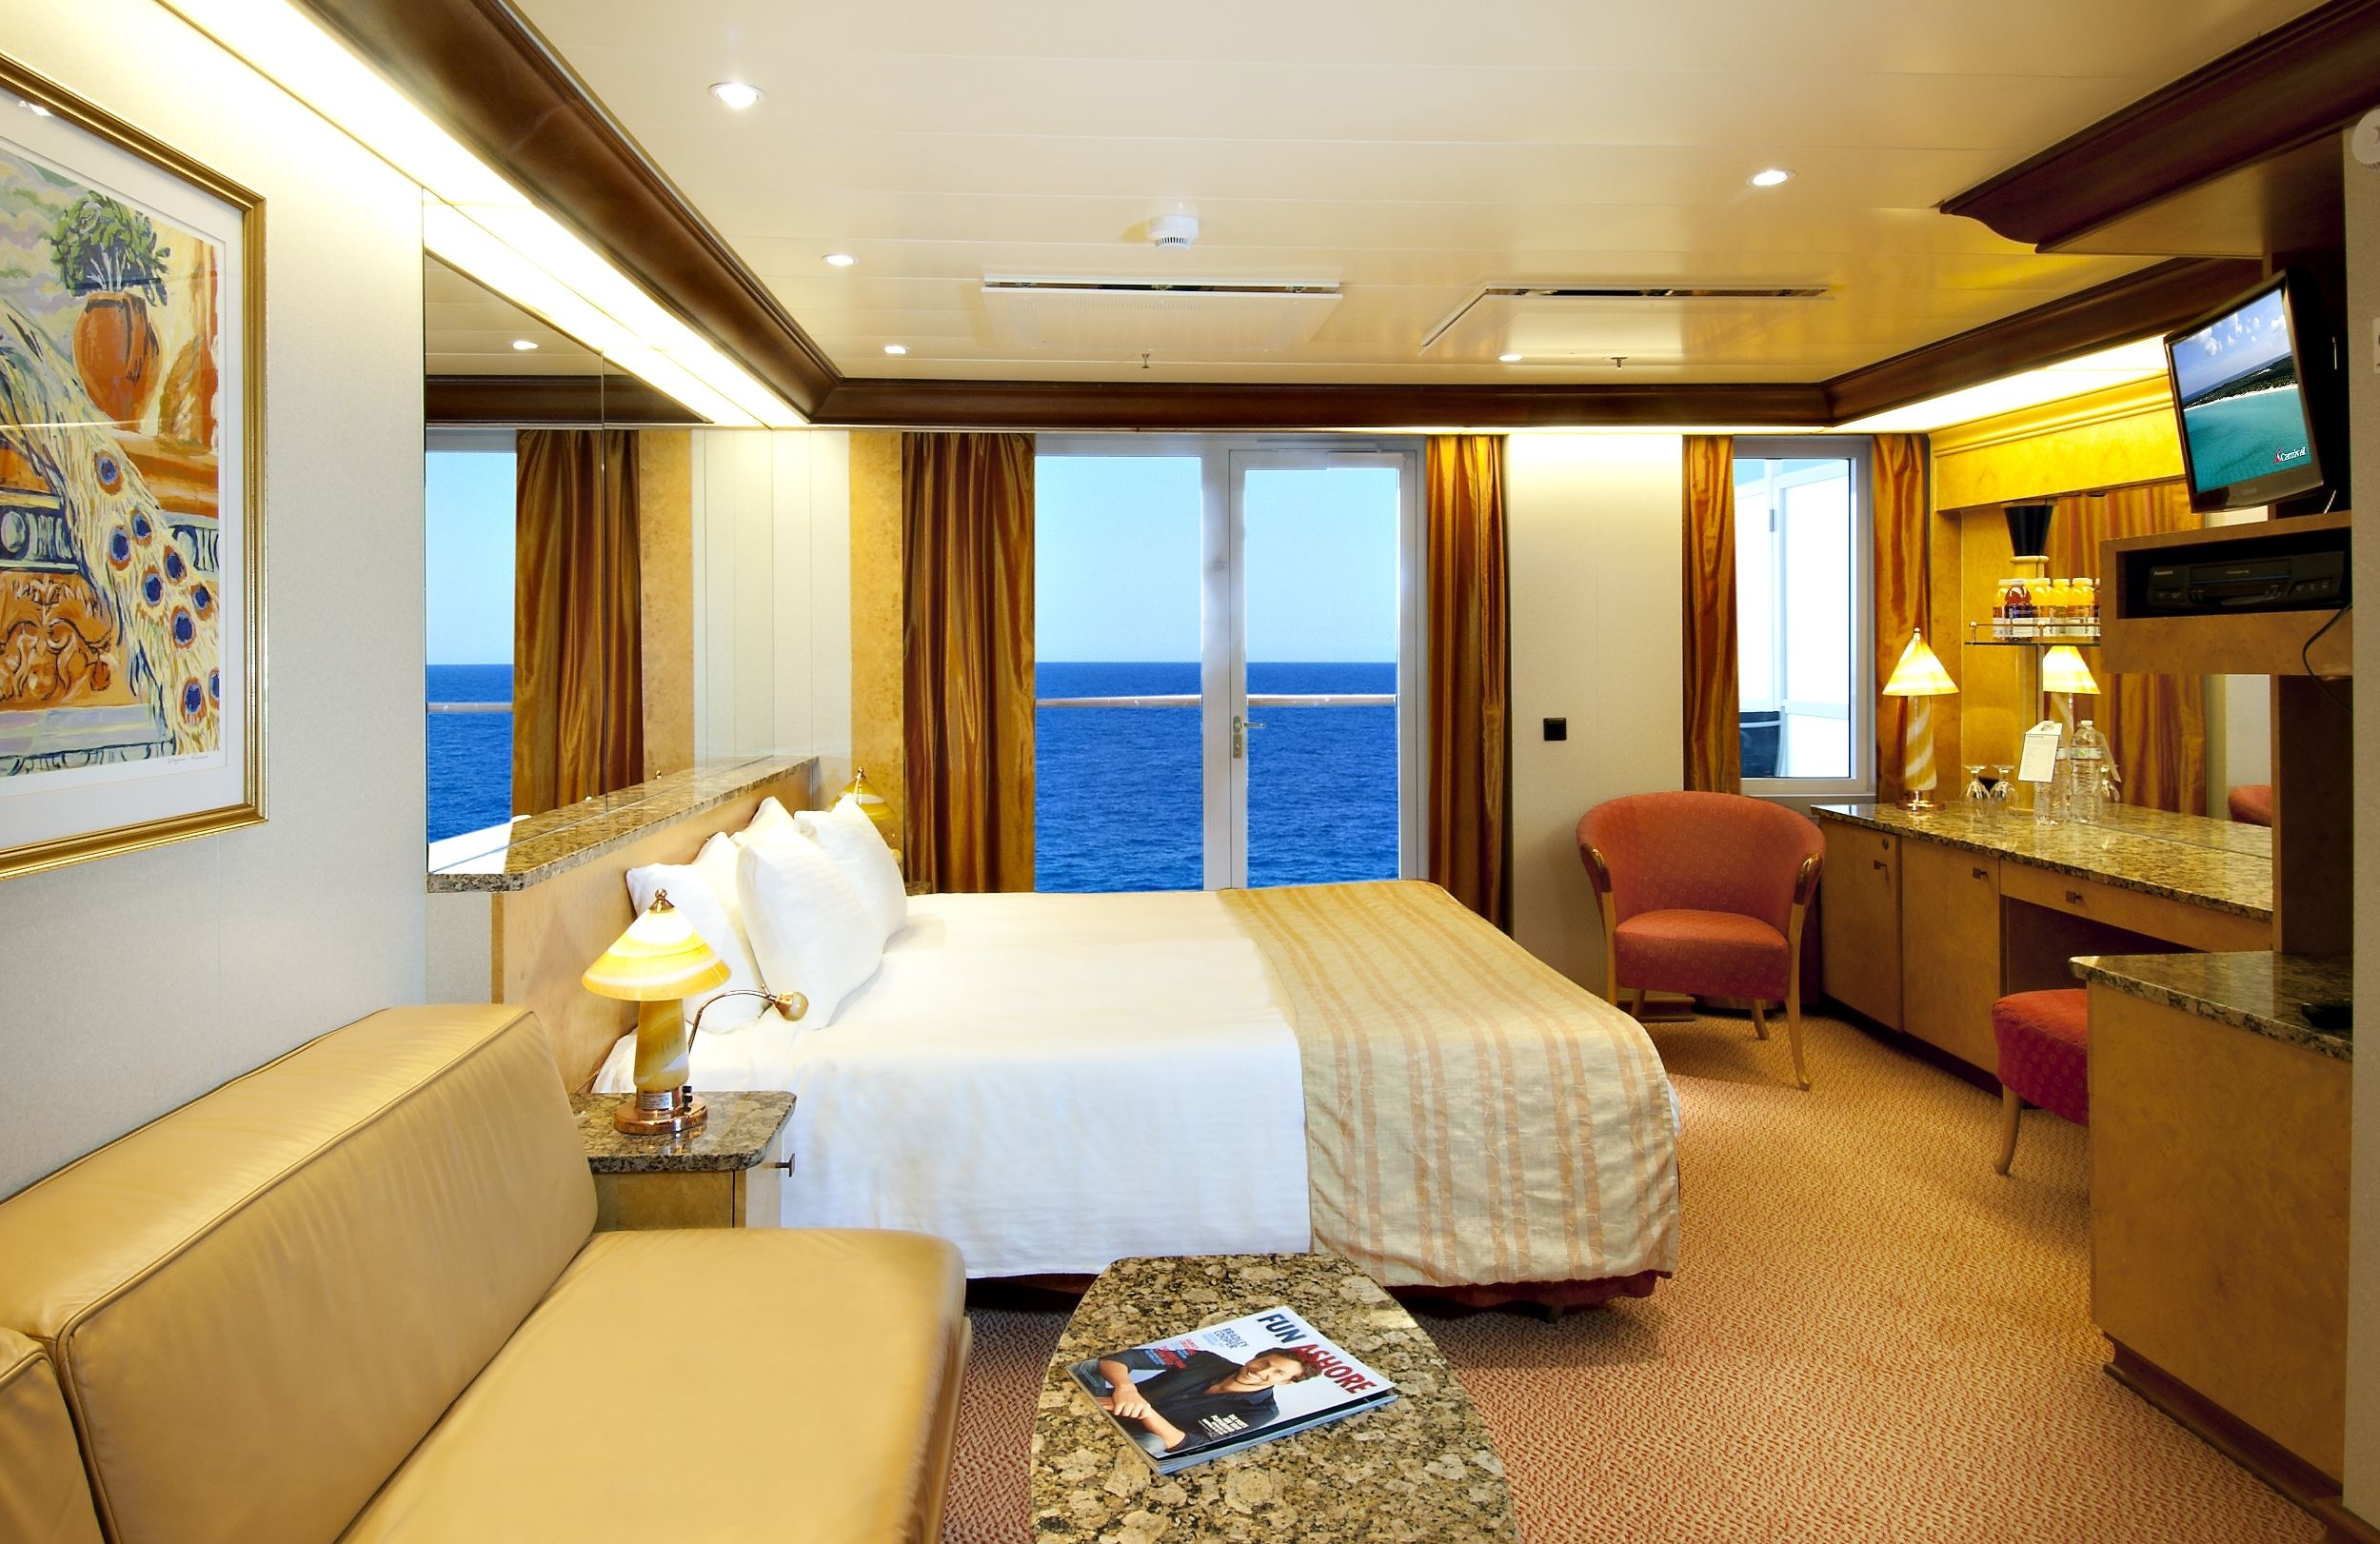 How To Pick The Right Cabin On A Cruise Ship Year - Carnival spirit cruise ship cabins